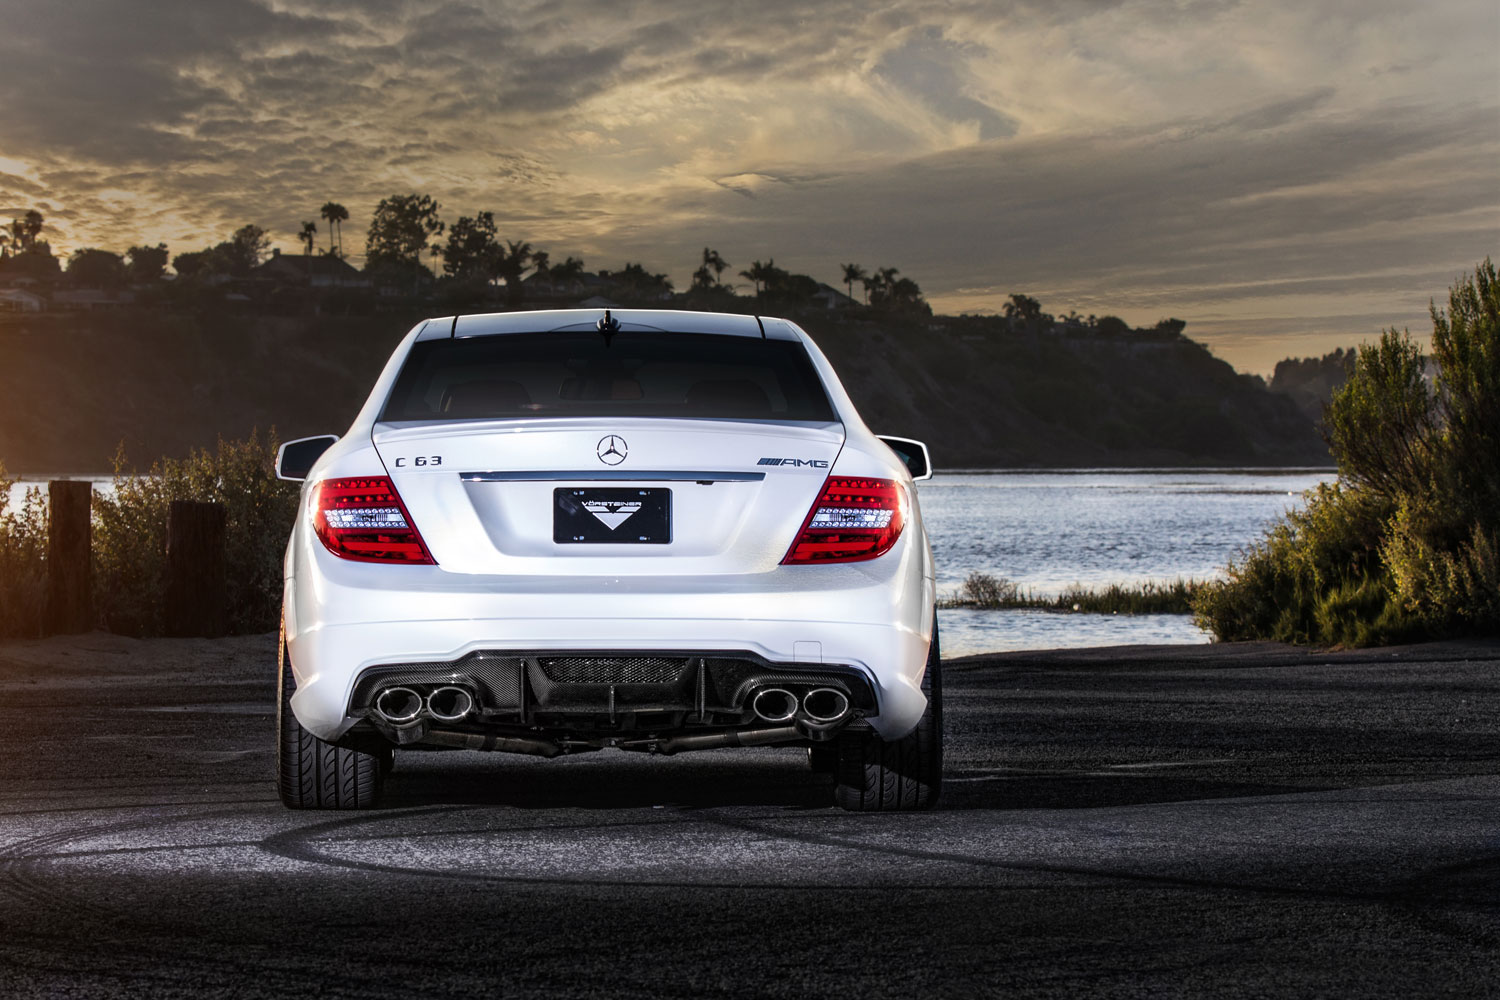 Vorsteiner Mercedes Benz C63 Amg With New Outdoor Photoshoot